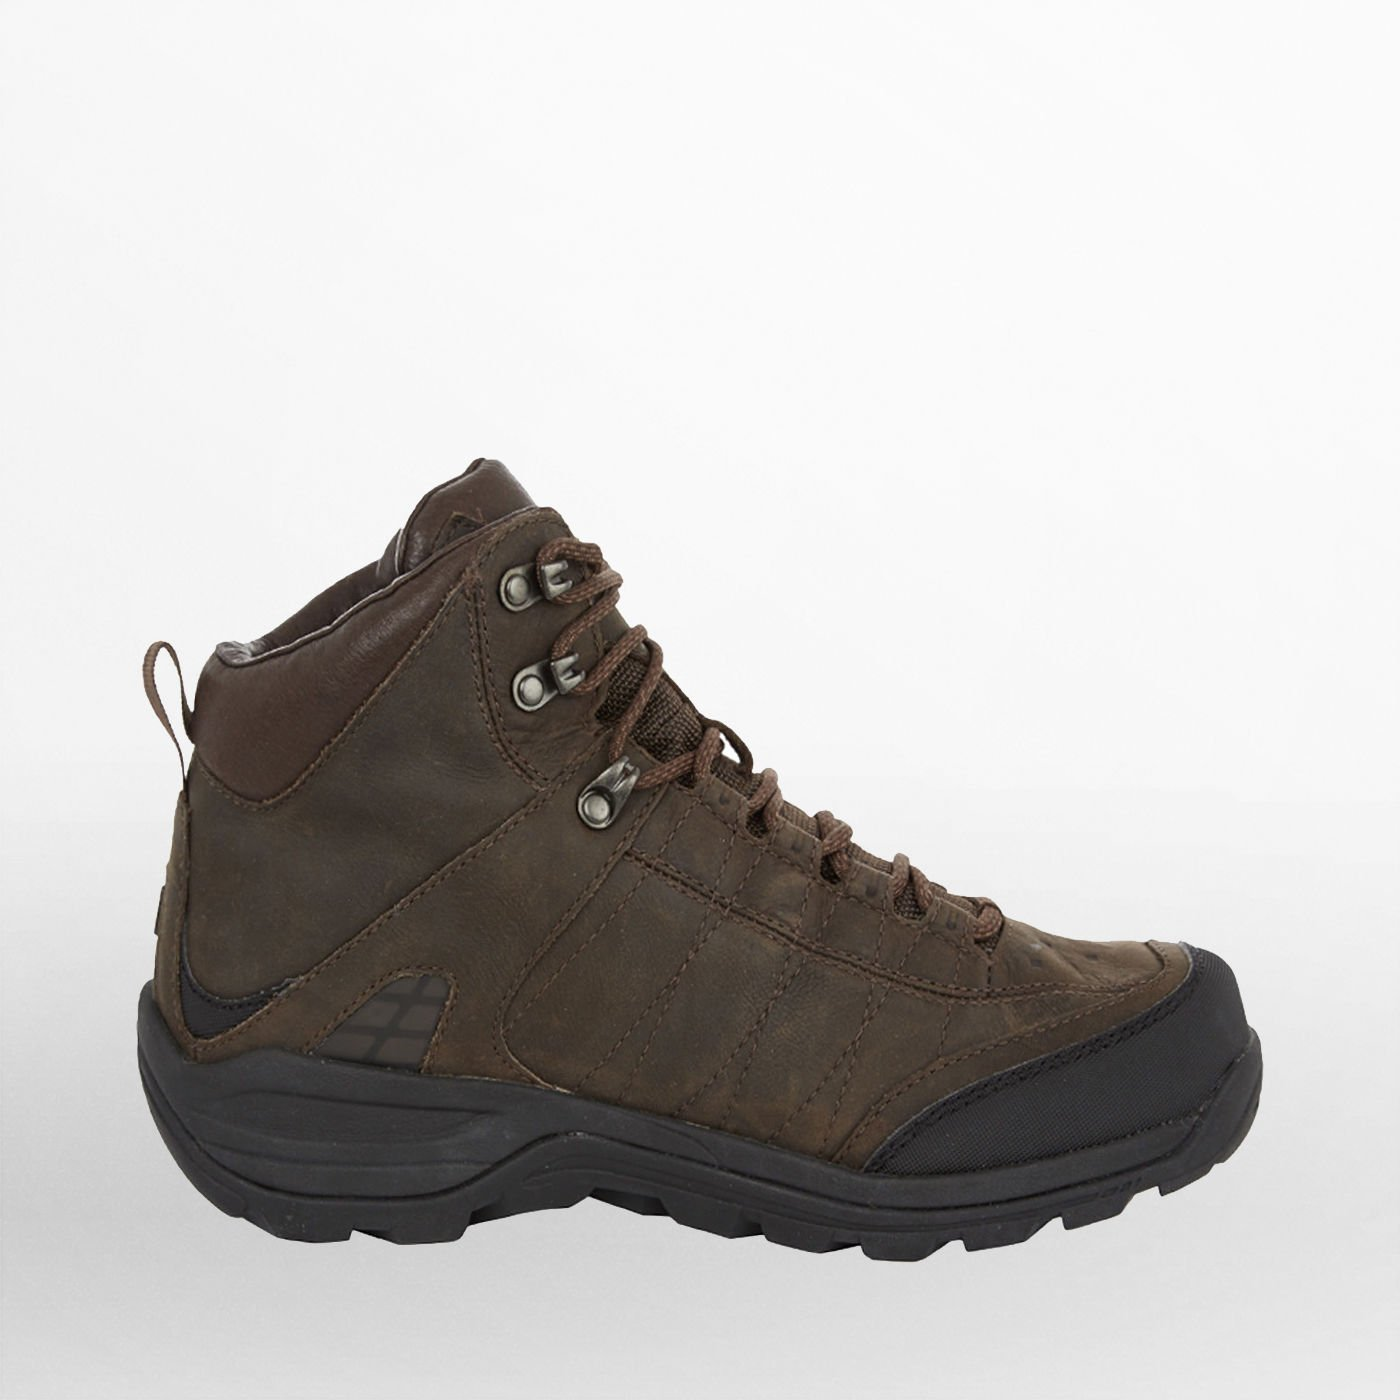 001d0d715115 REVIEWED  Teva Kimtah Mid eVent Leather hiking boots - Travgear.com